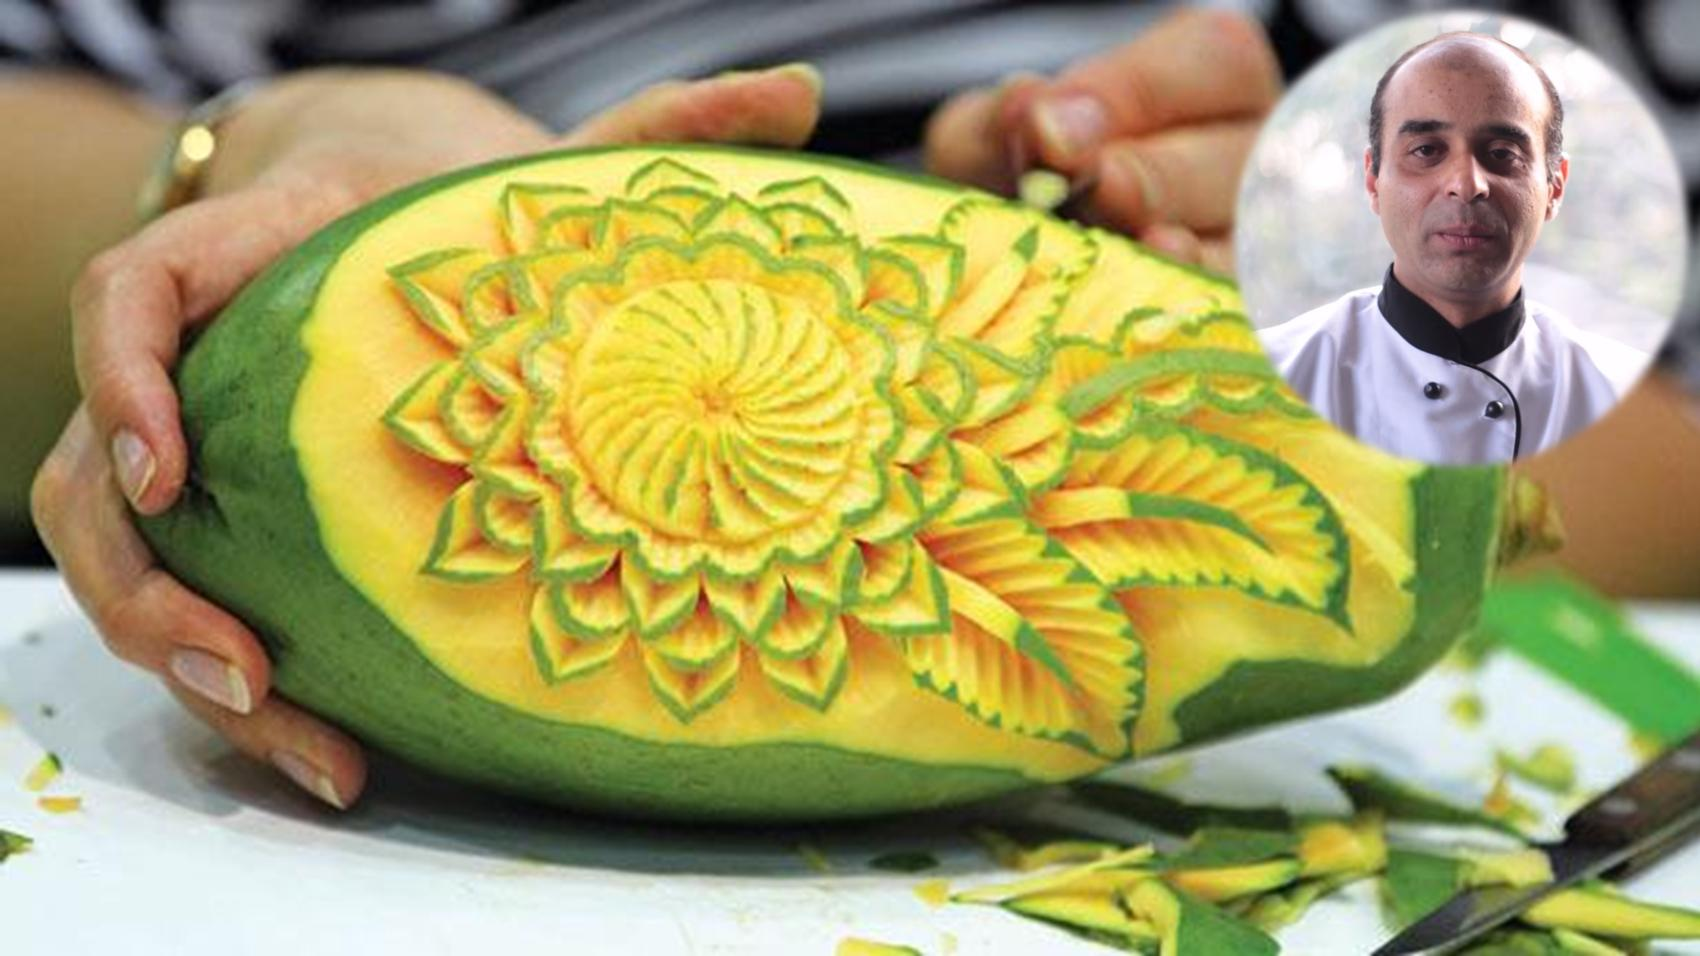 Career in Fruit & Vegetable Carving